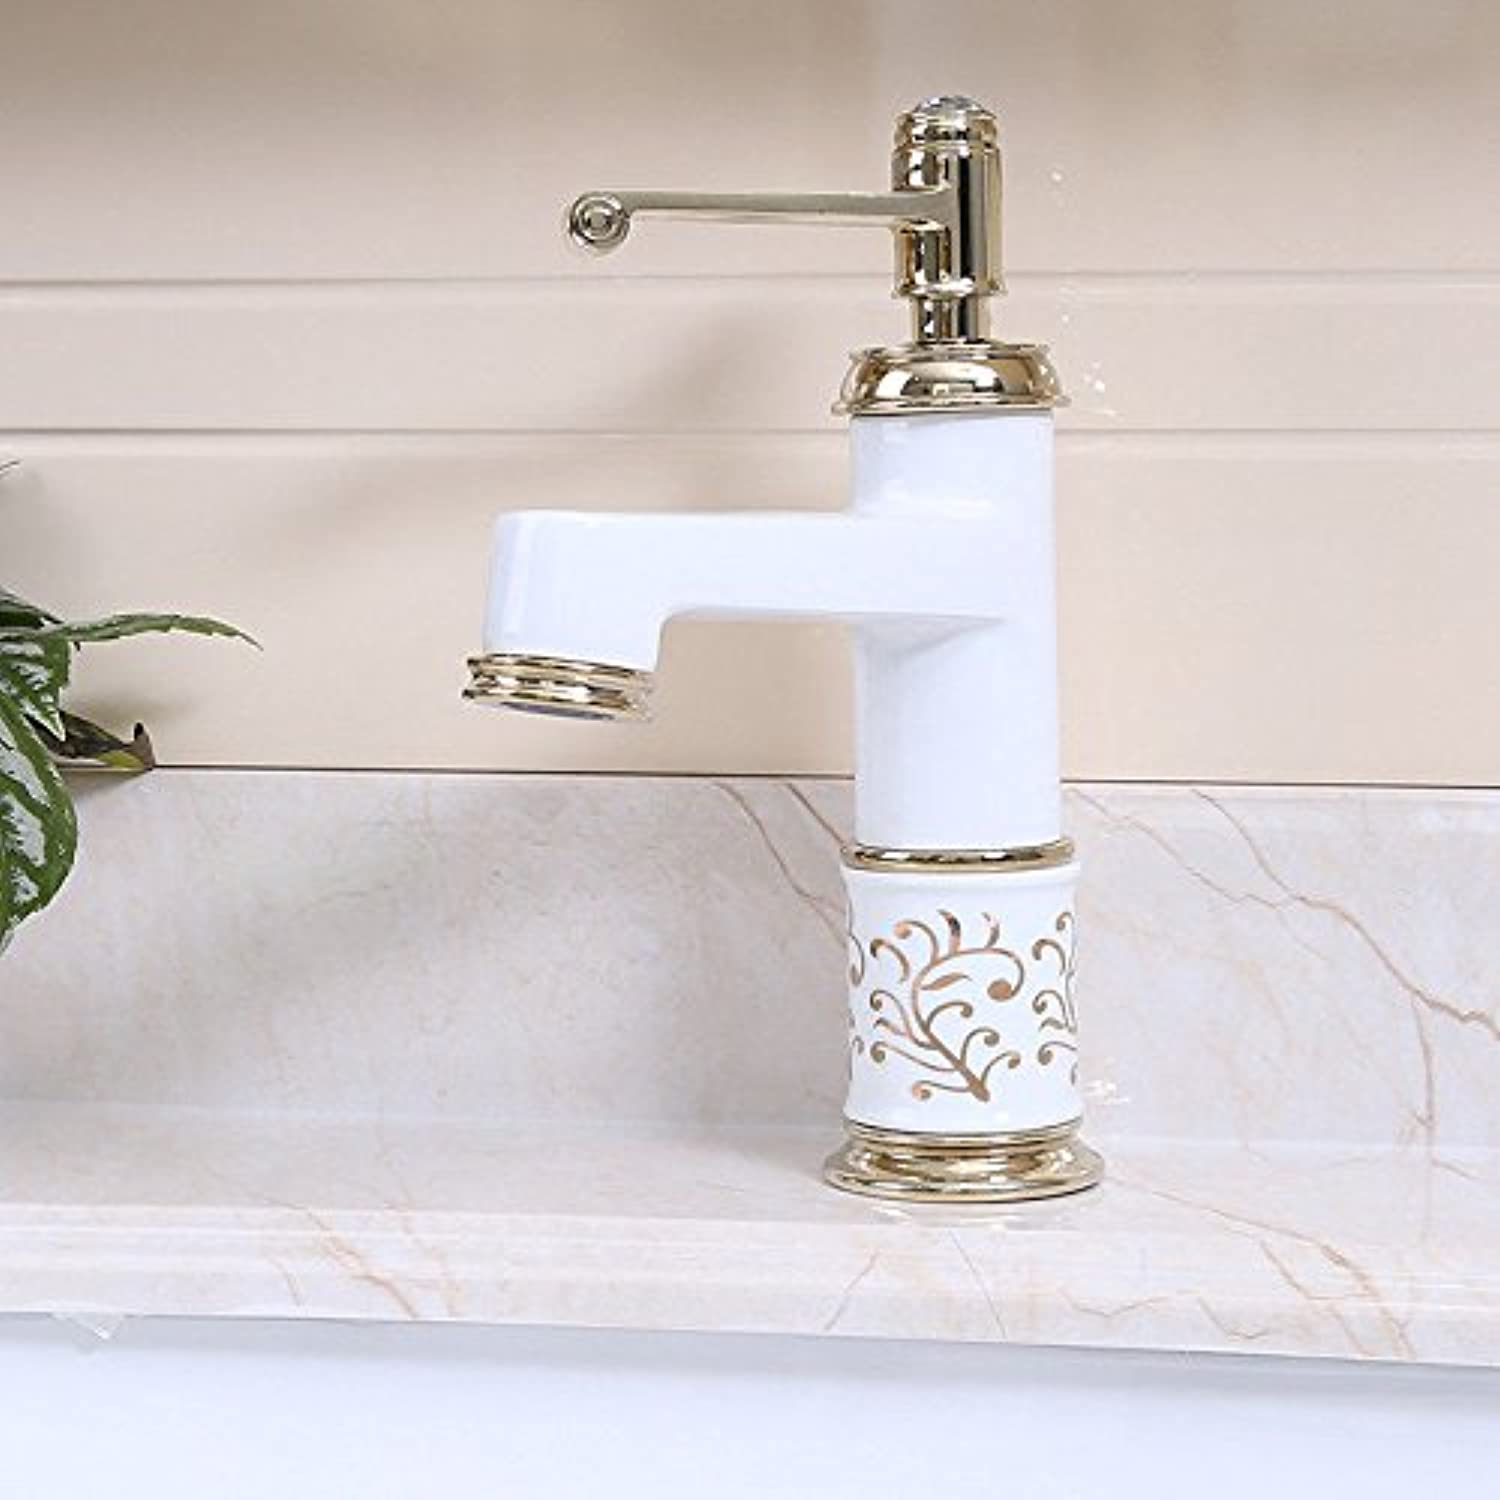 Hlluya Professional Sink Mixer Tap Kitchen Faucet Antique-brass hot and cold basin sink faucet sink mixer, White